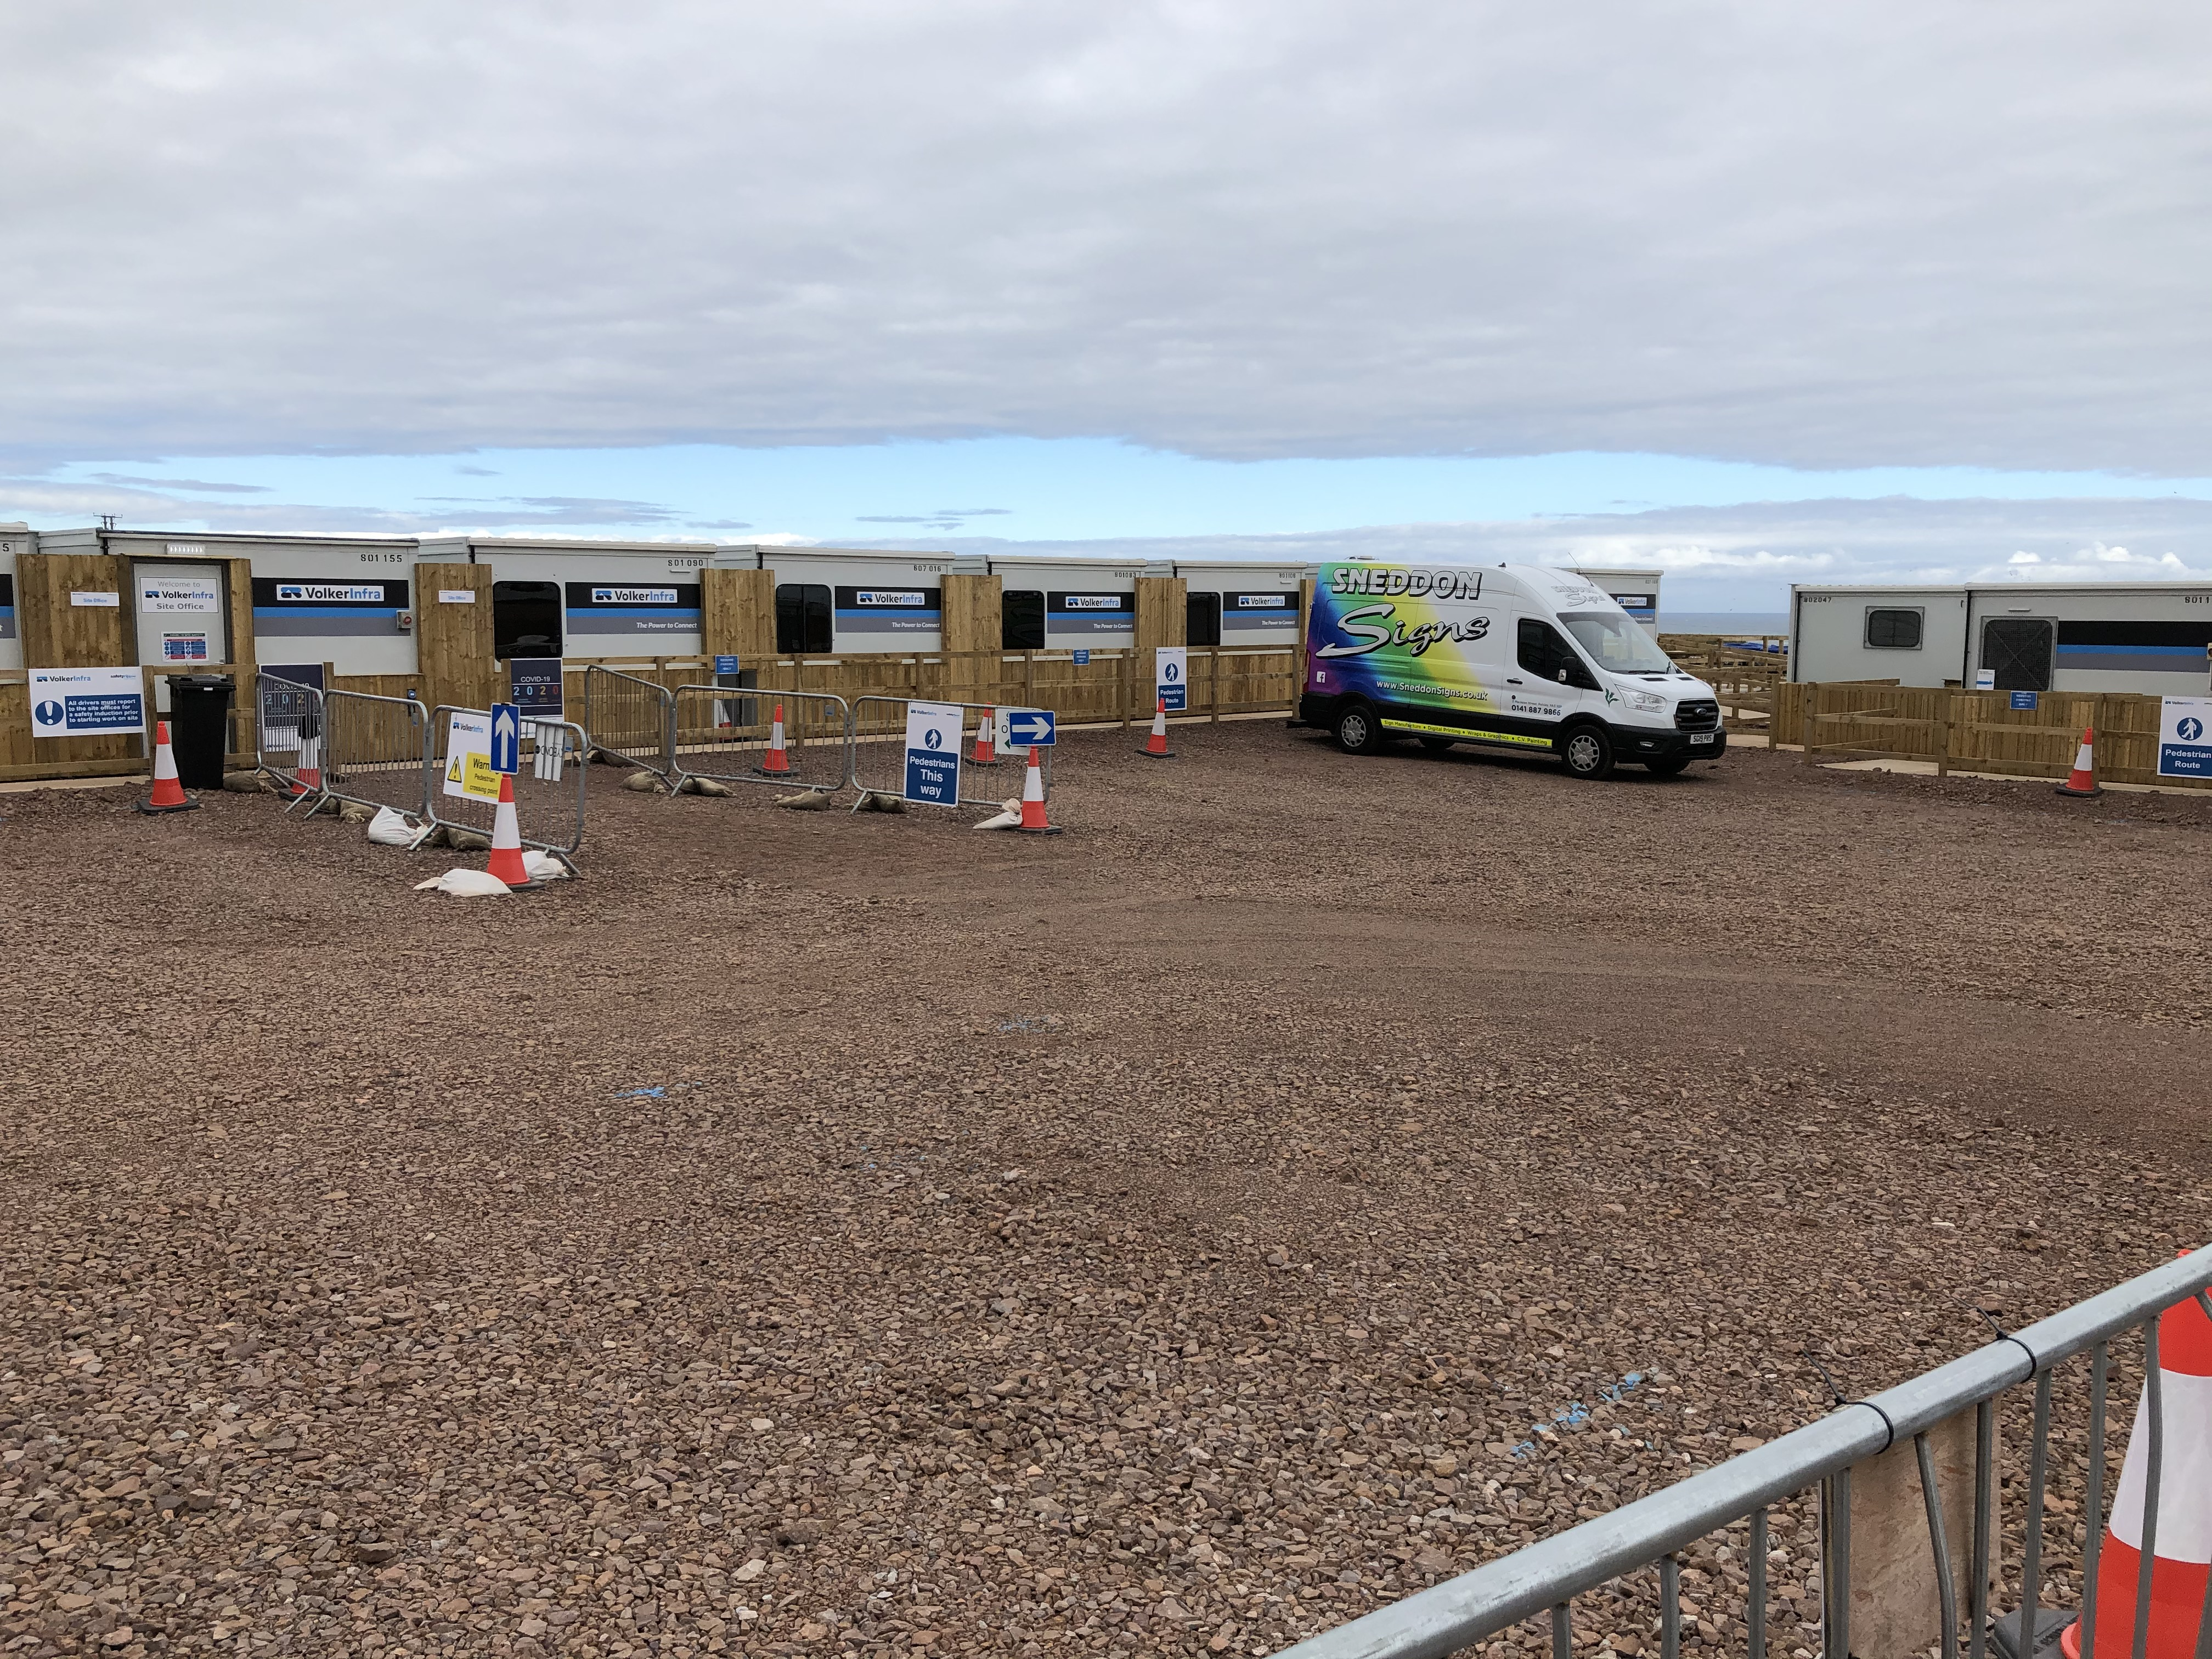 The cabins with their colour flashes fitted and fencing built, giving a much nicer look to the site